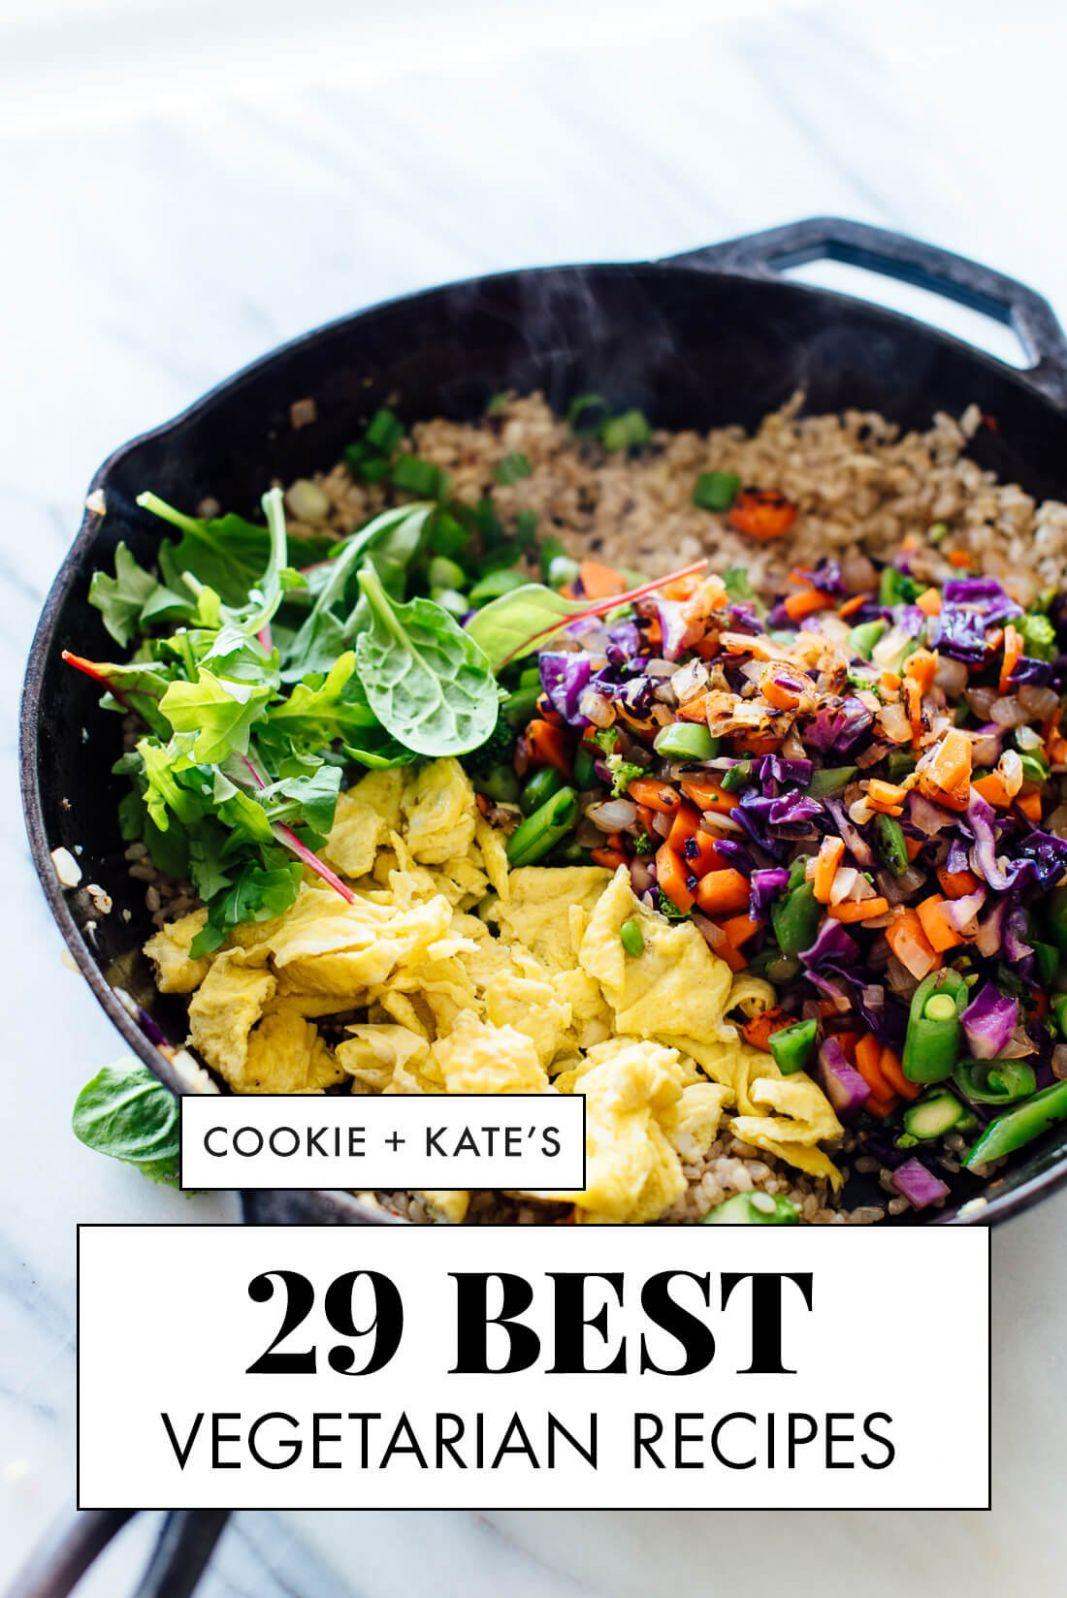 11 Best Vegetarian Recipes - Cookie and Kate - Vegetable Recipes Names